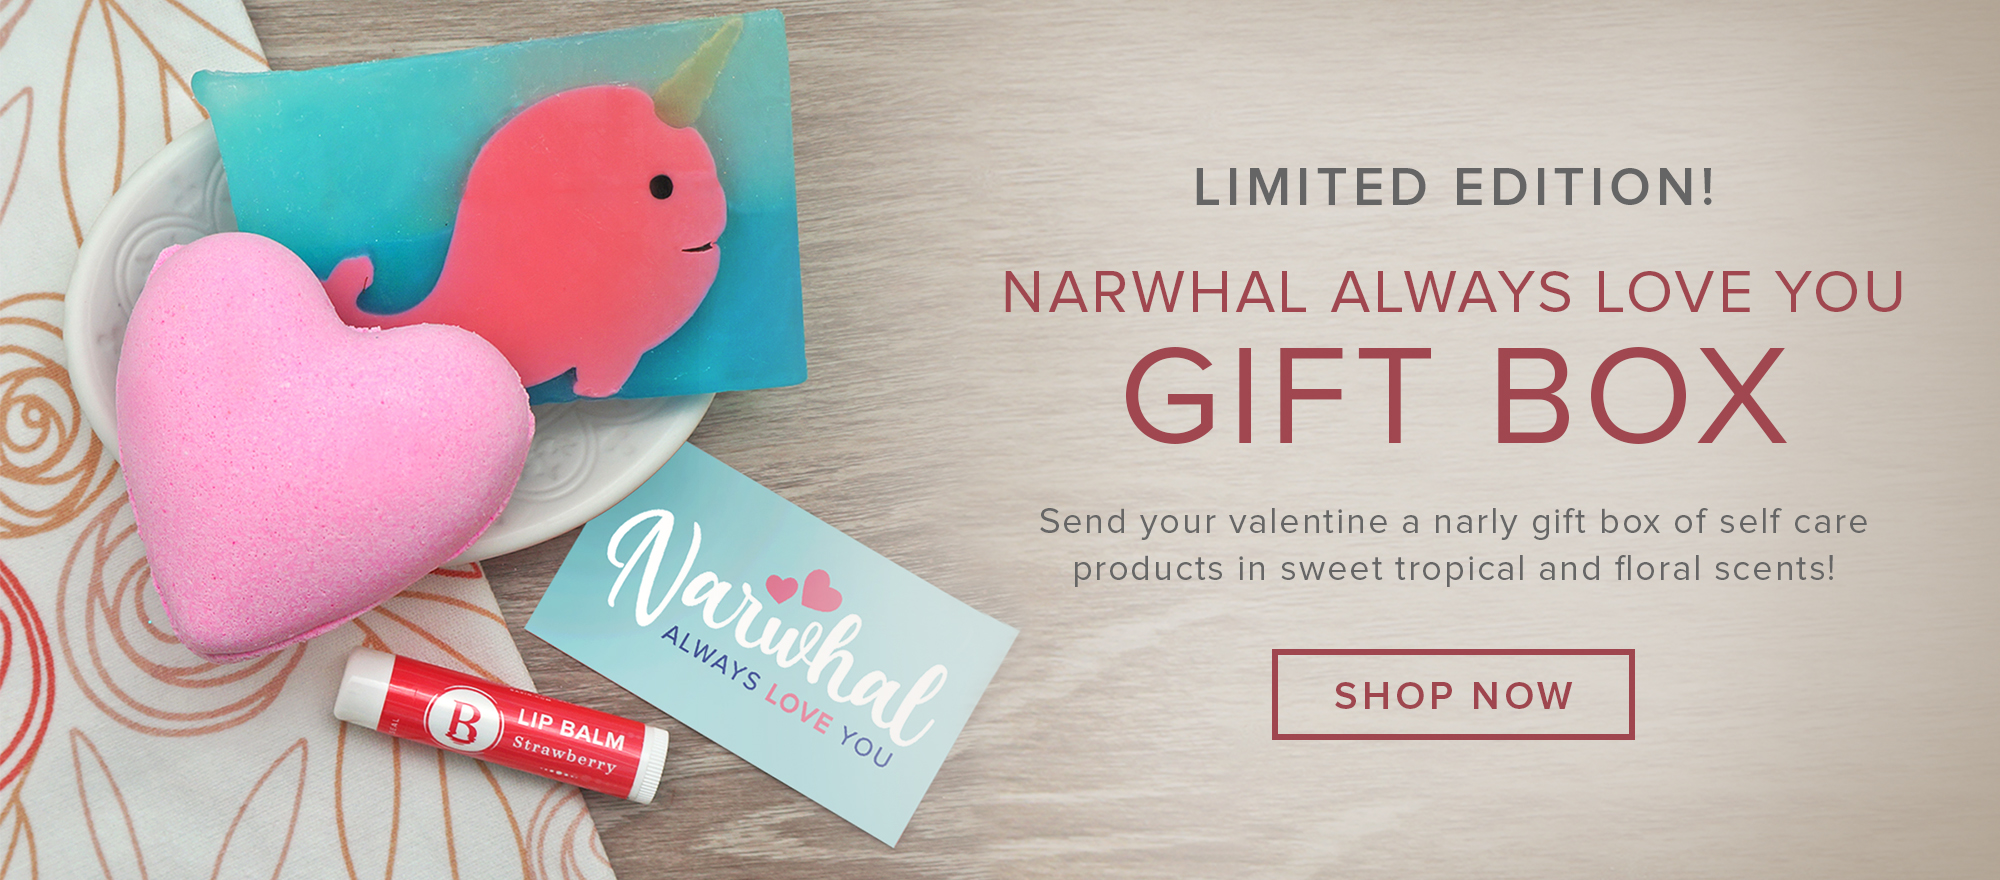 Narwhal Always Love You Gift Box